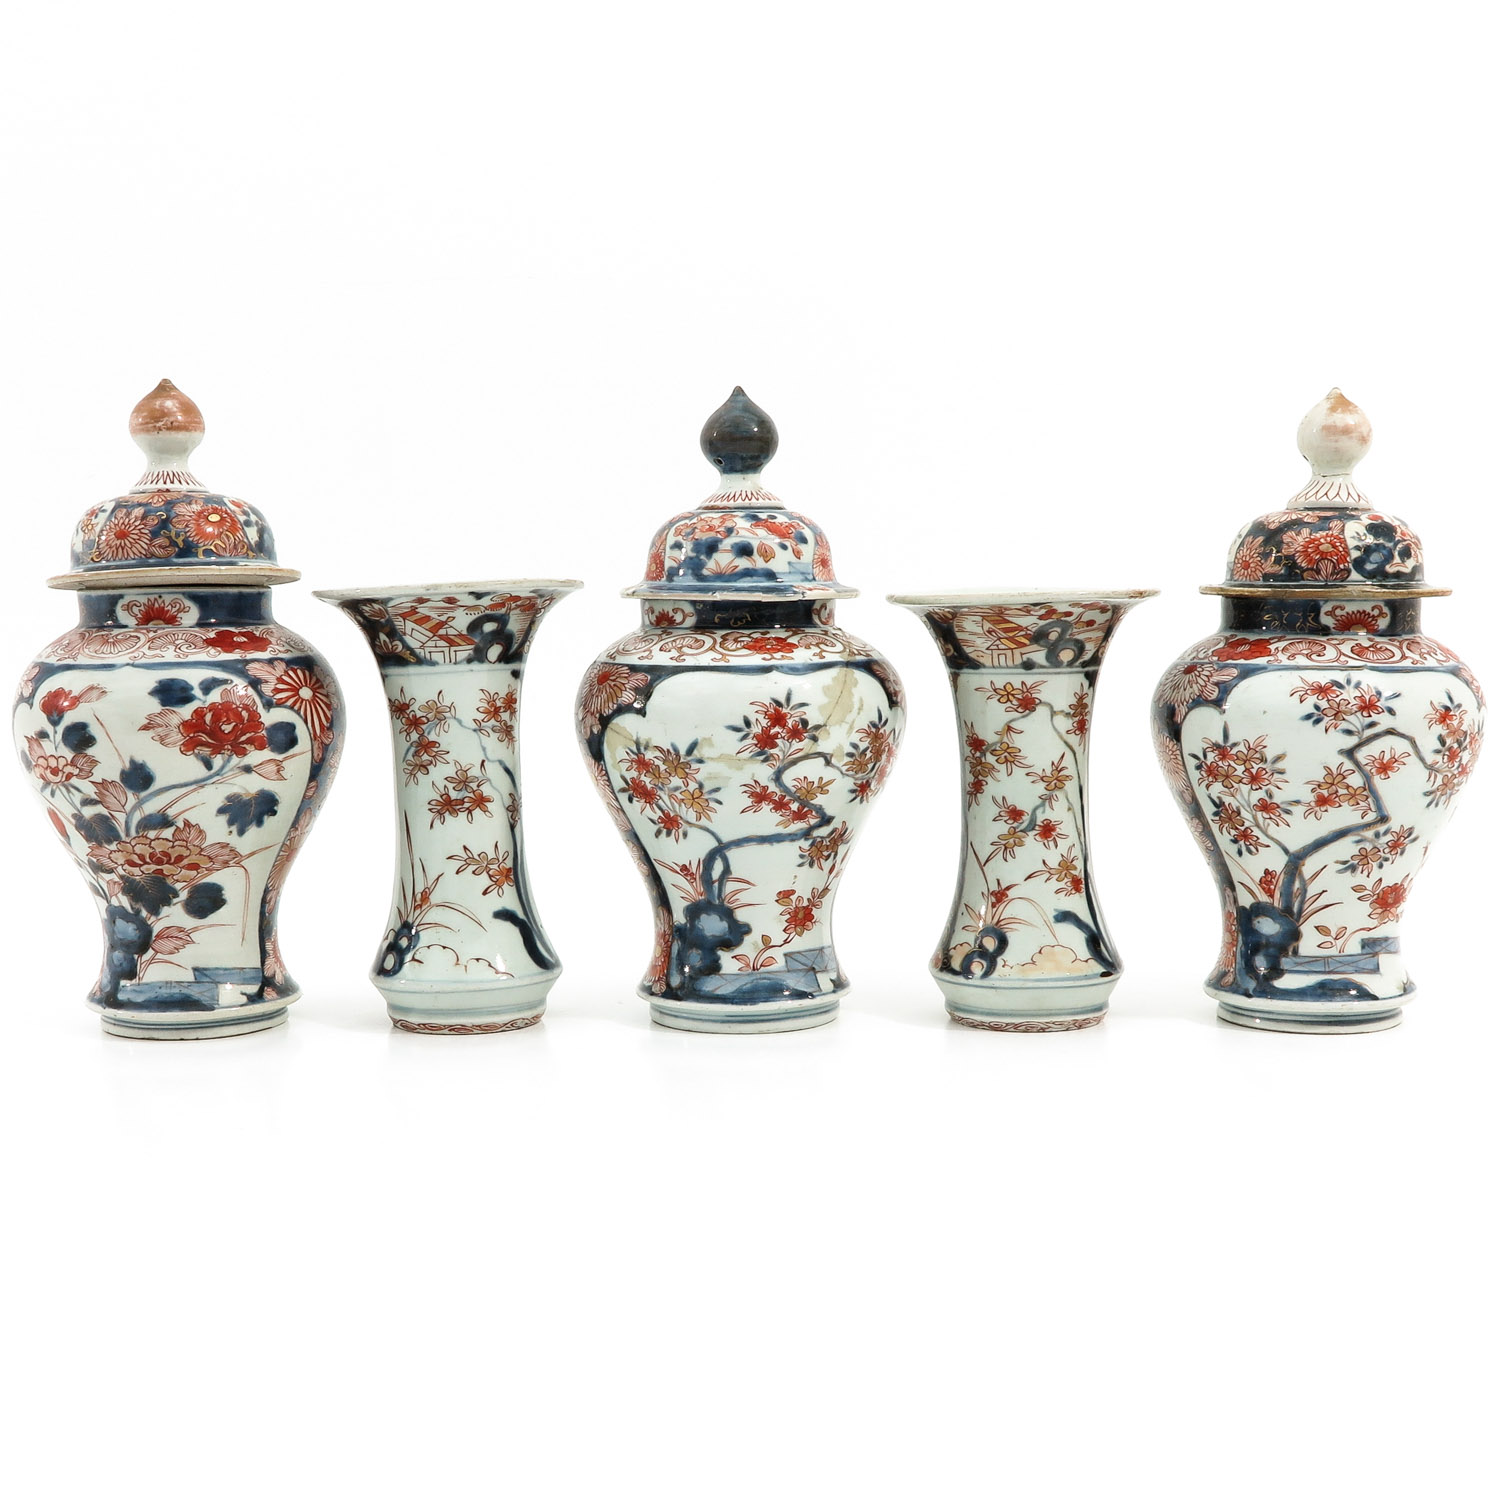 A 5 Piece Imari Garniture Set - Image 3 of 9